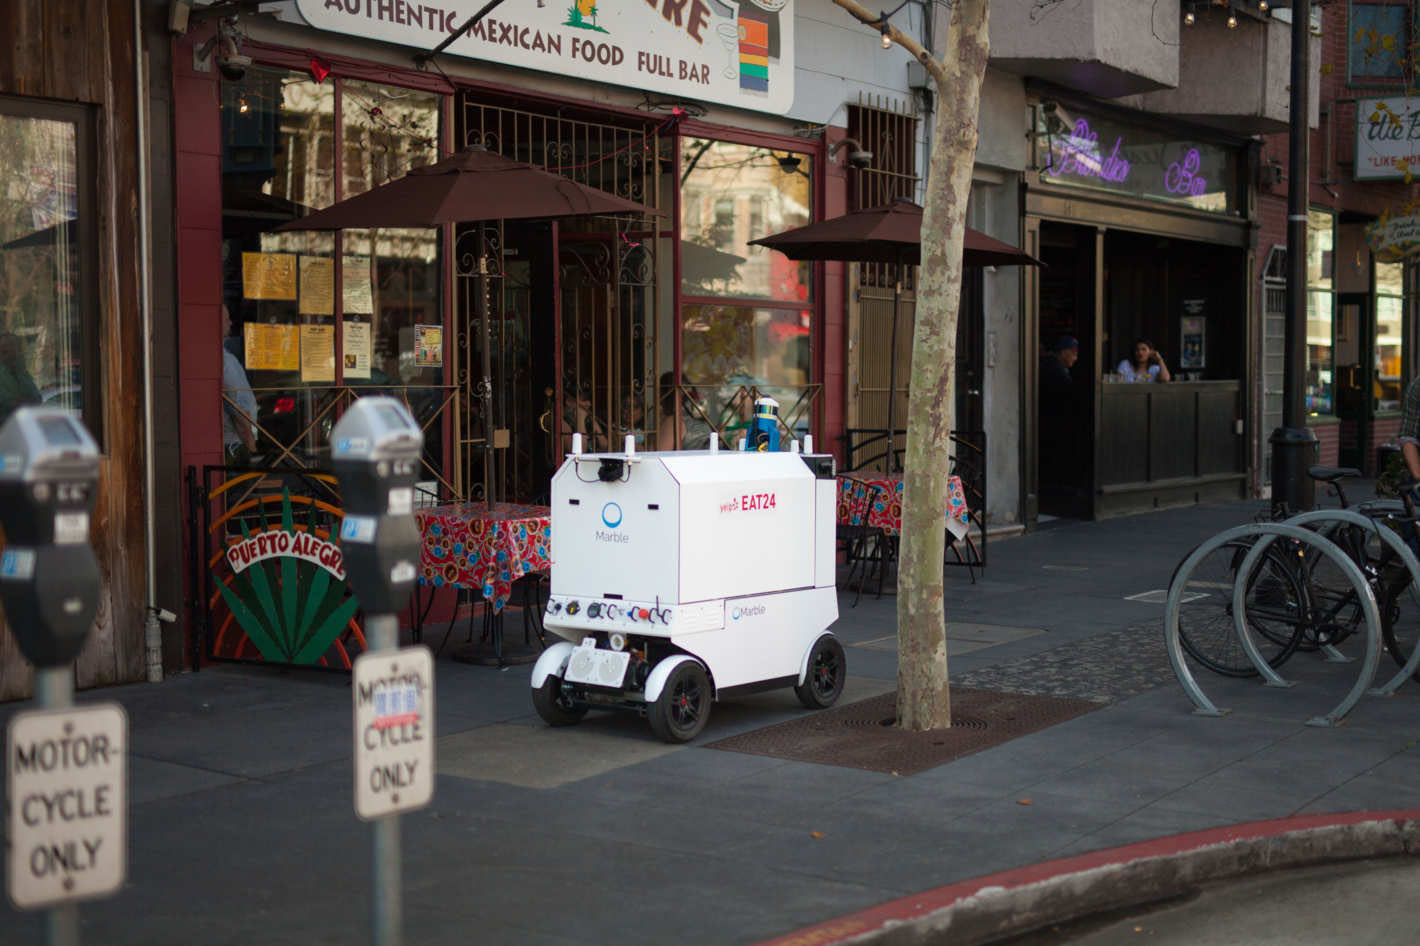 Yelp and Eat24 conducted a food delivery pilot bringing Marble's robots to San Francisco in 2017. (Image: Marble)